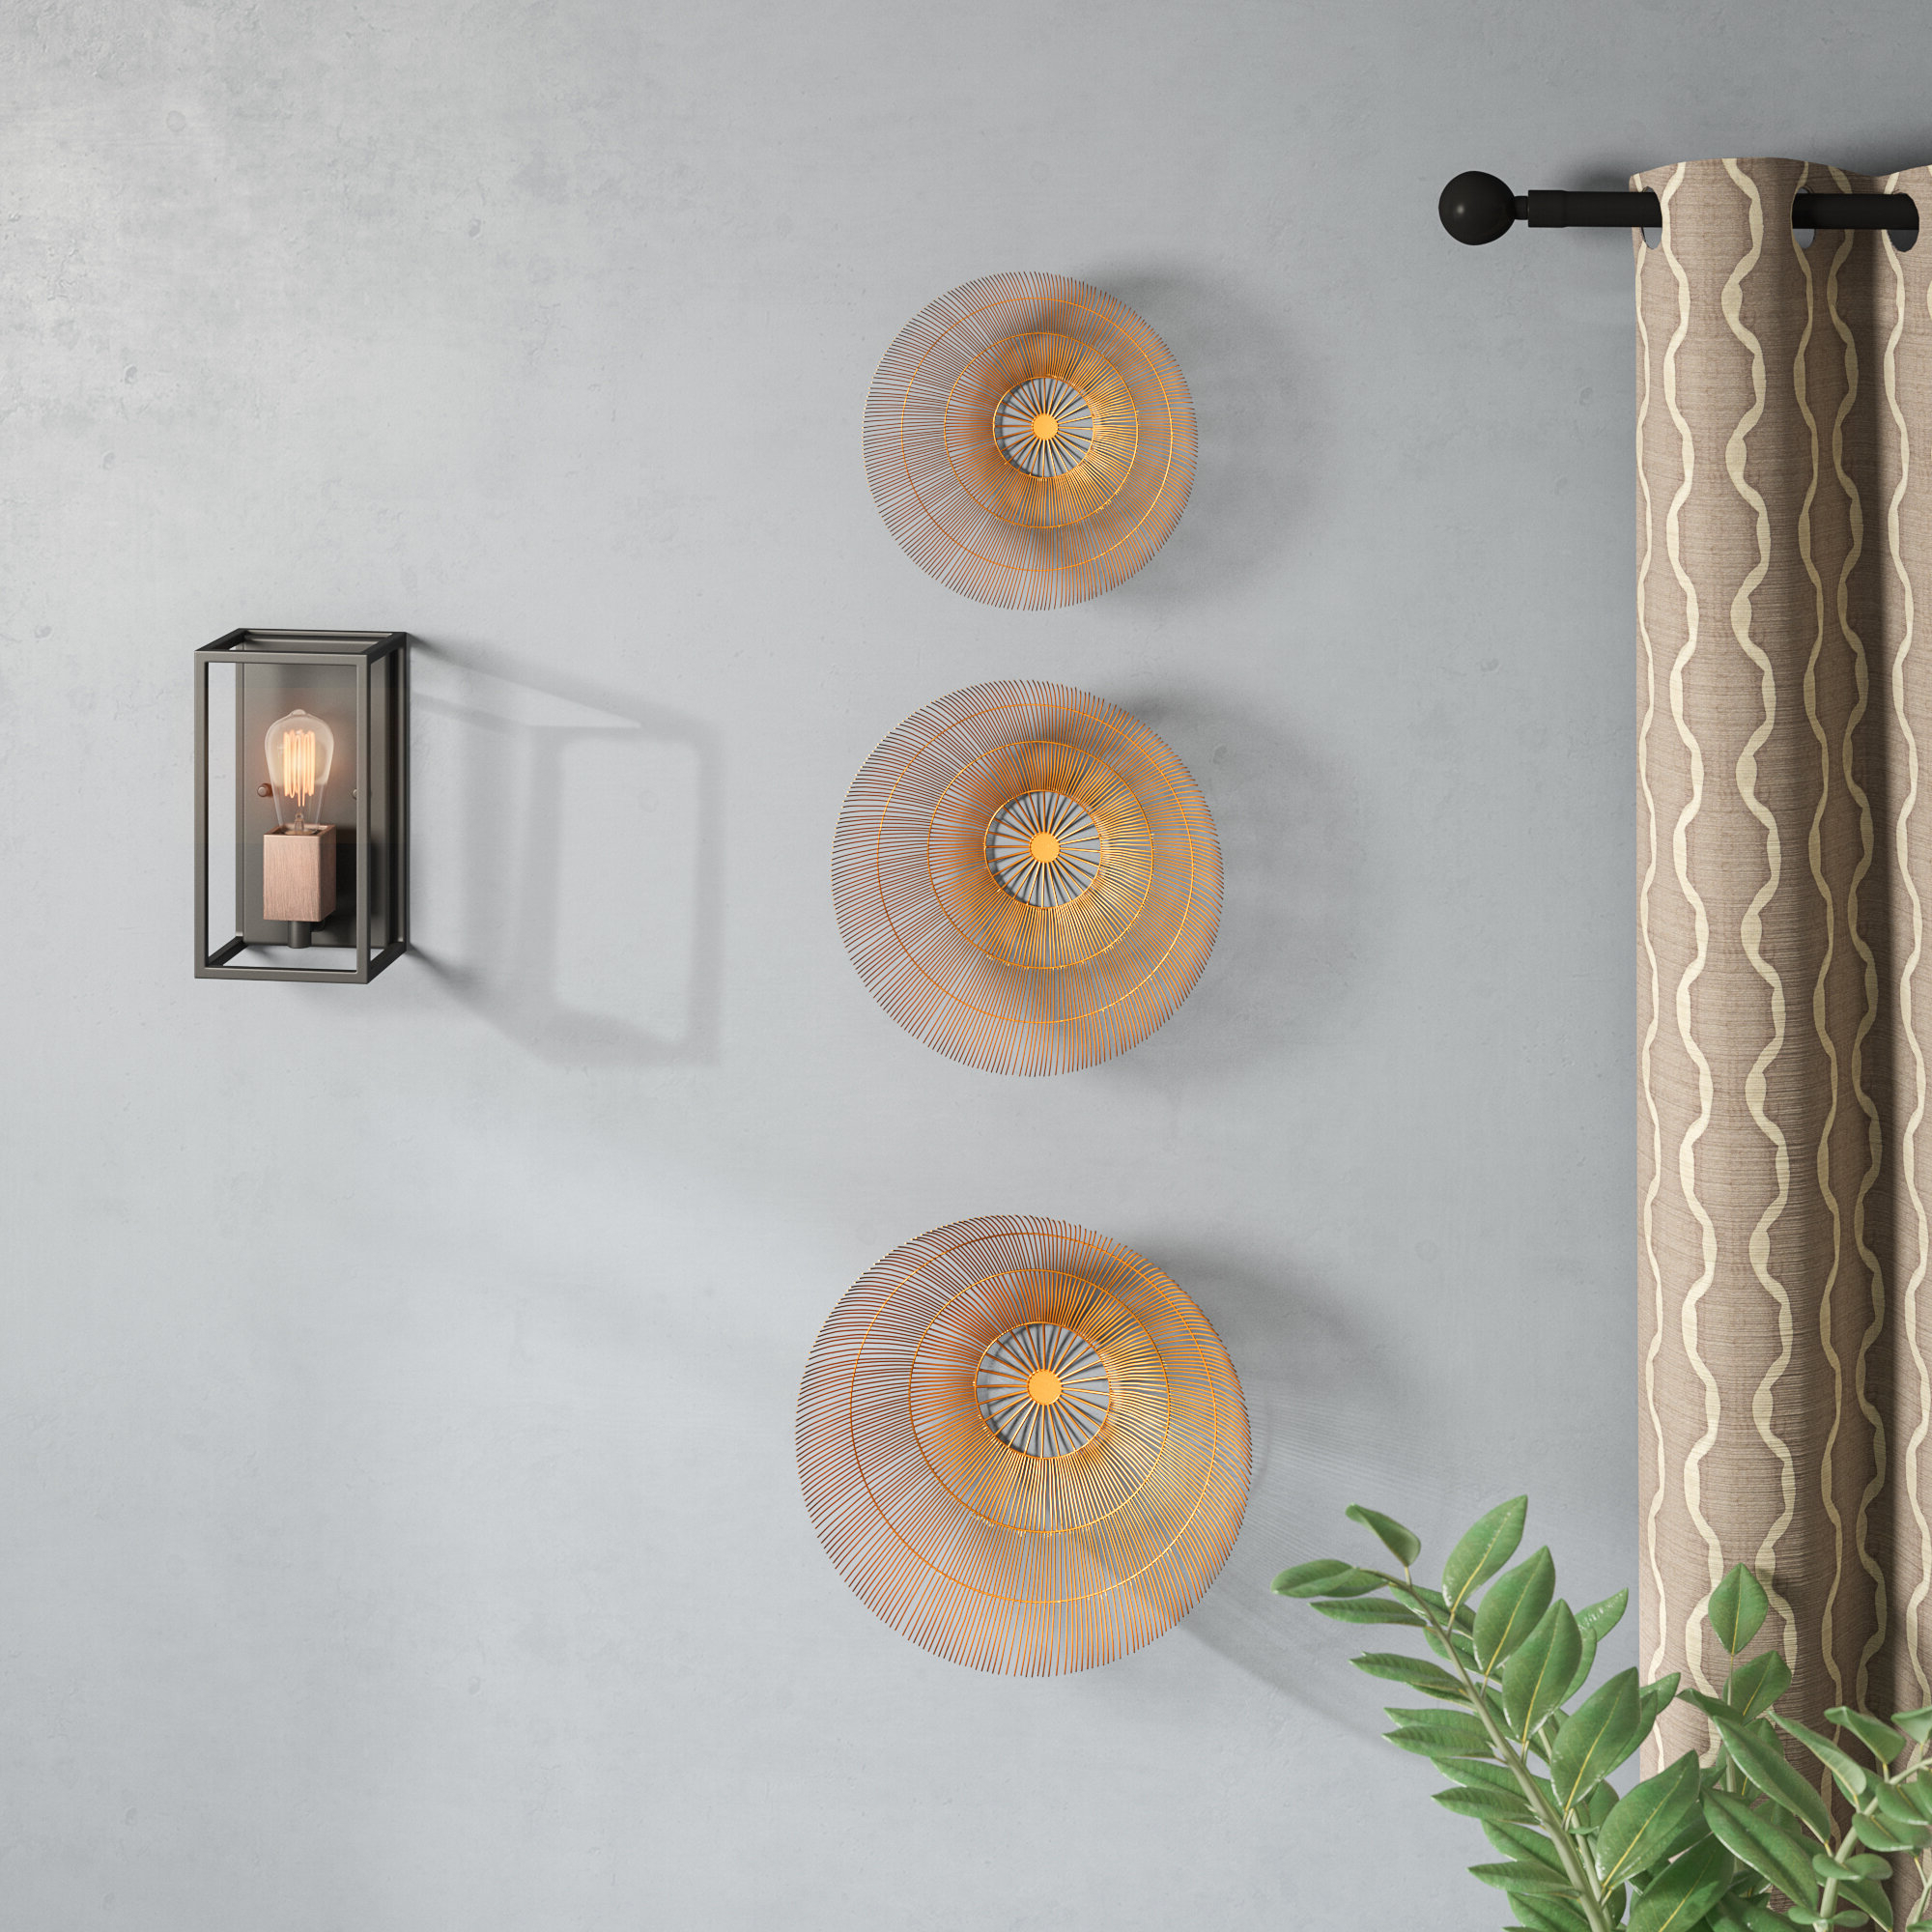 3 Piece Wall Decor Sets By Wrought Studio Throughout Most Up To Date Brayden Studio 3 Piece Wall Décor Set (Gallery 7 of 20)